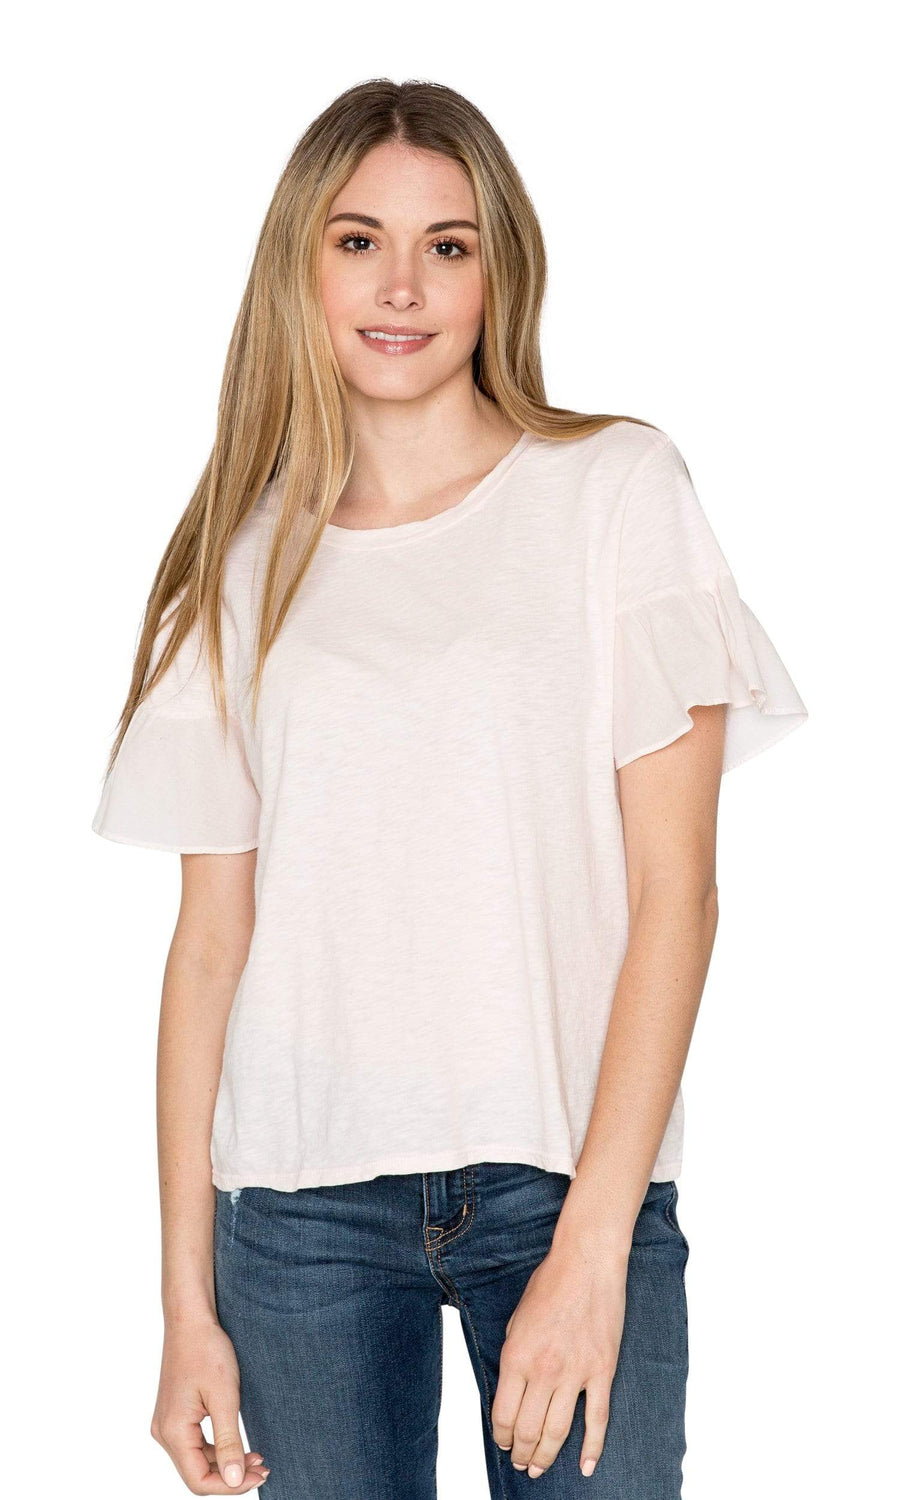 Velvet by Graham & Spencer Maureen Cotton Contrast Ruffle Sleeve Top